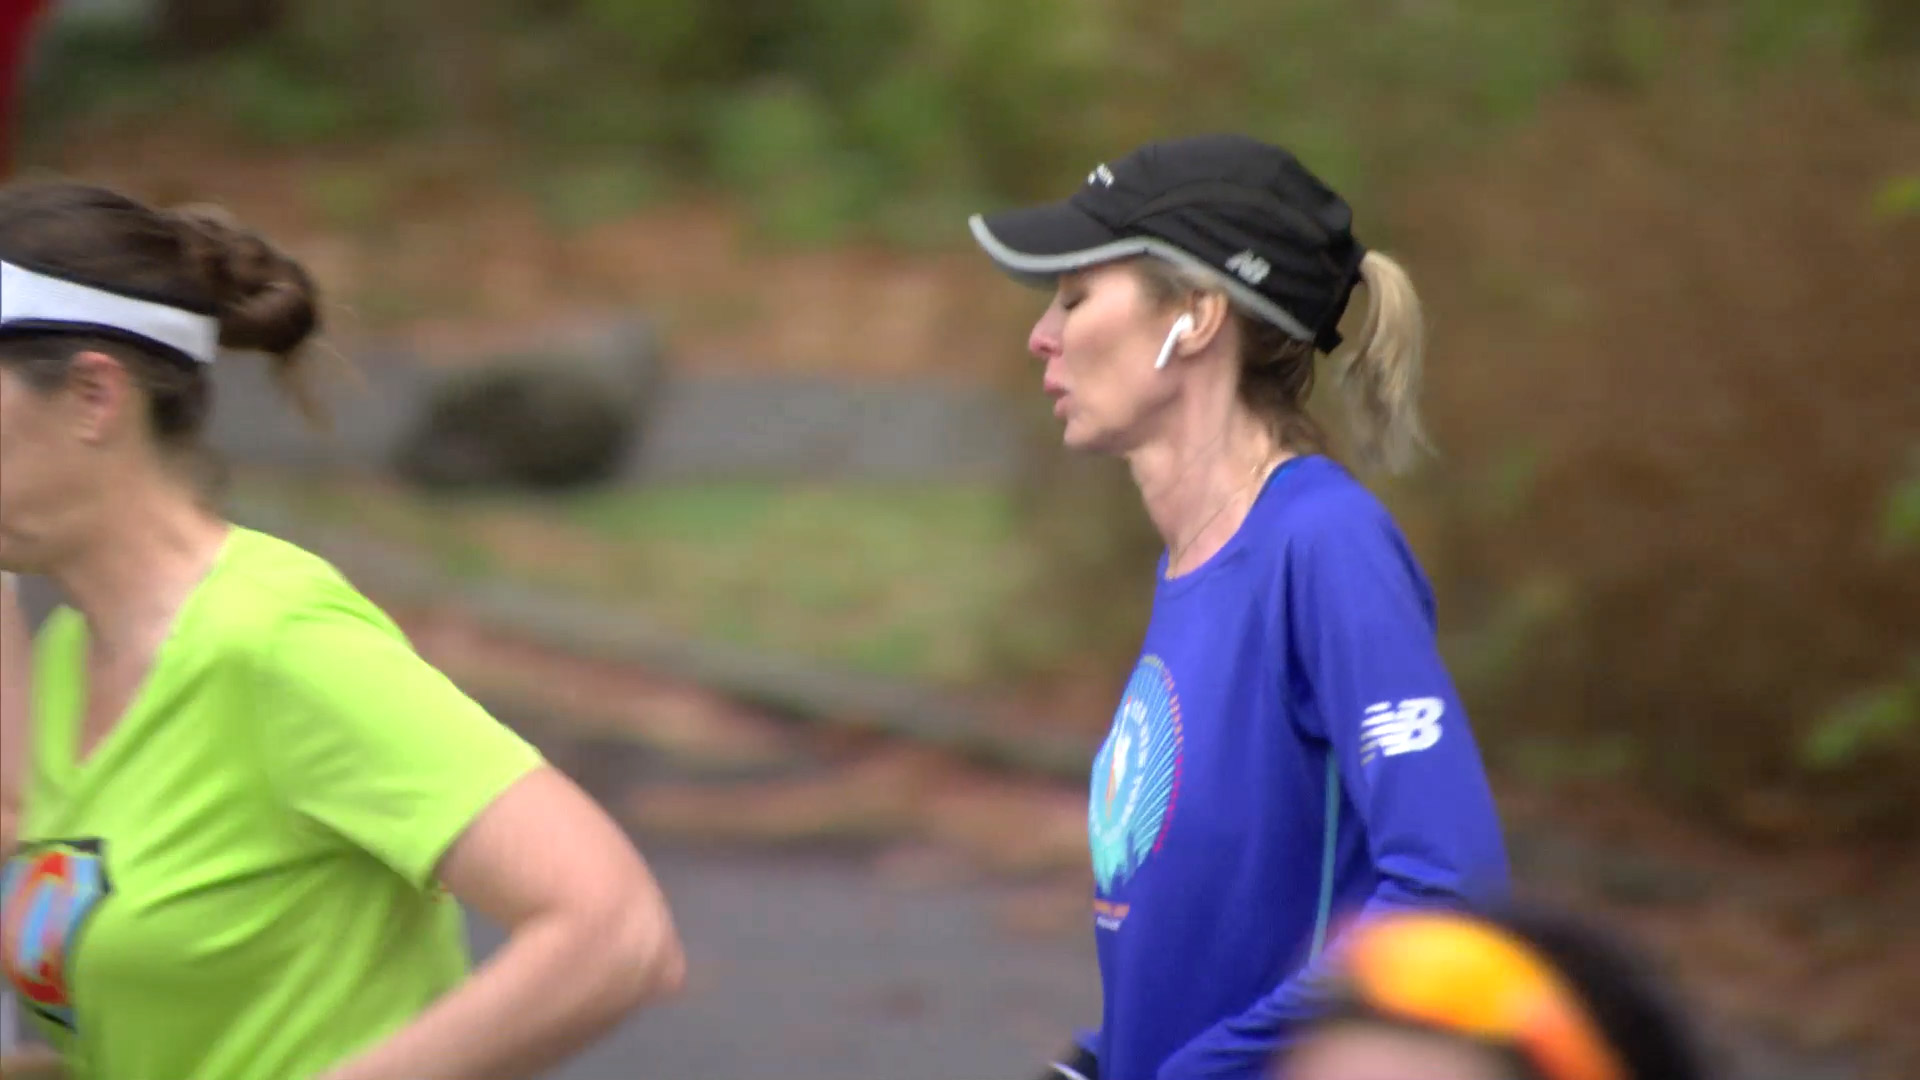 Will Carole Finish the Marathon?